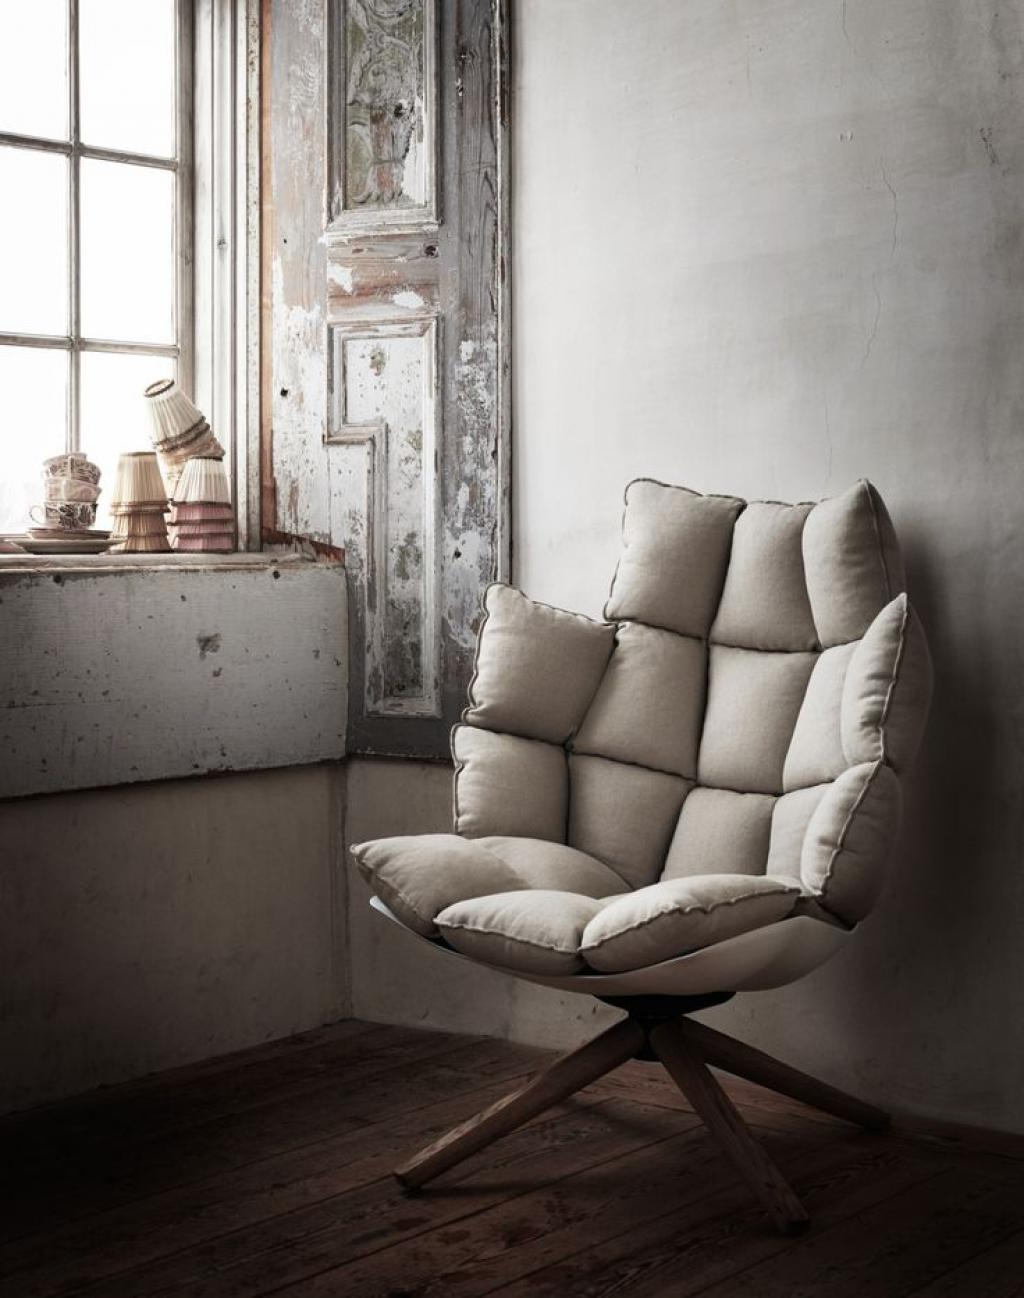 Contemporary Reading Chair with Vilntage Theme Room